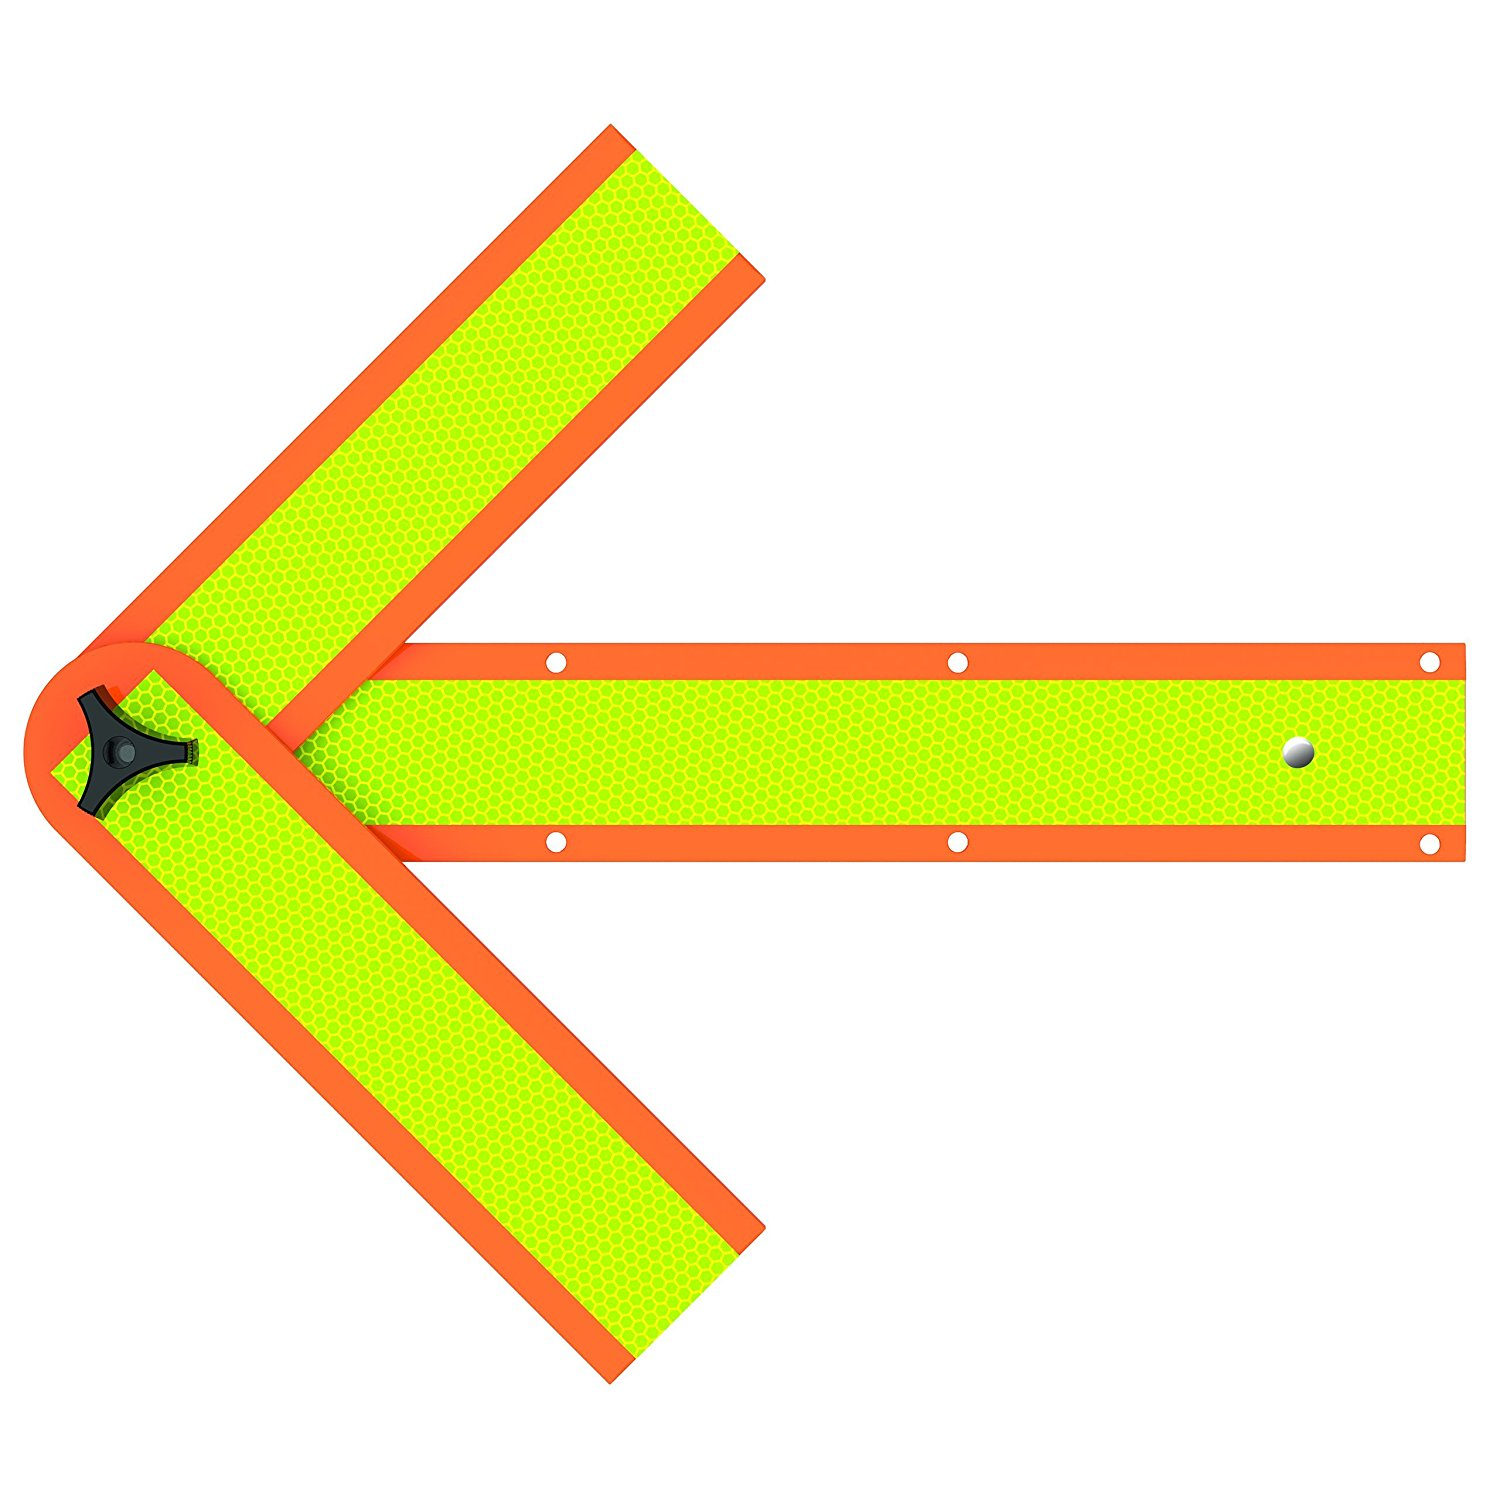 """Roadside Emergency Reflective Safety Arrow, Magnetic and Mountable, 18"""" (SA-2034C), Highly reflective, ultra bright emergency arrow helps avoid a potential accident or.., By Deflecto Ship from US"""